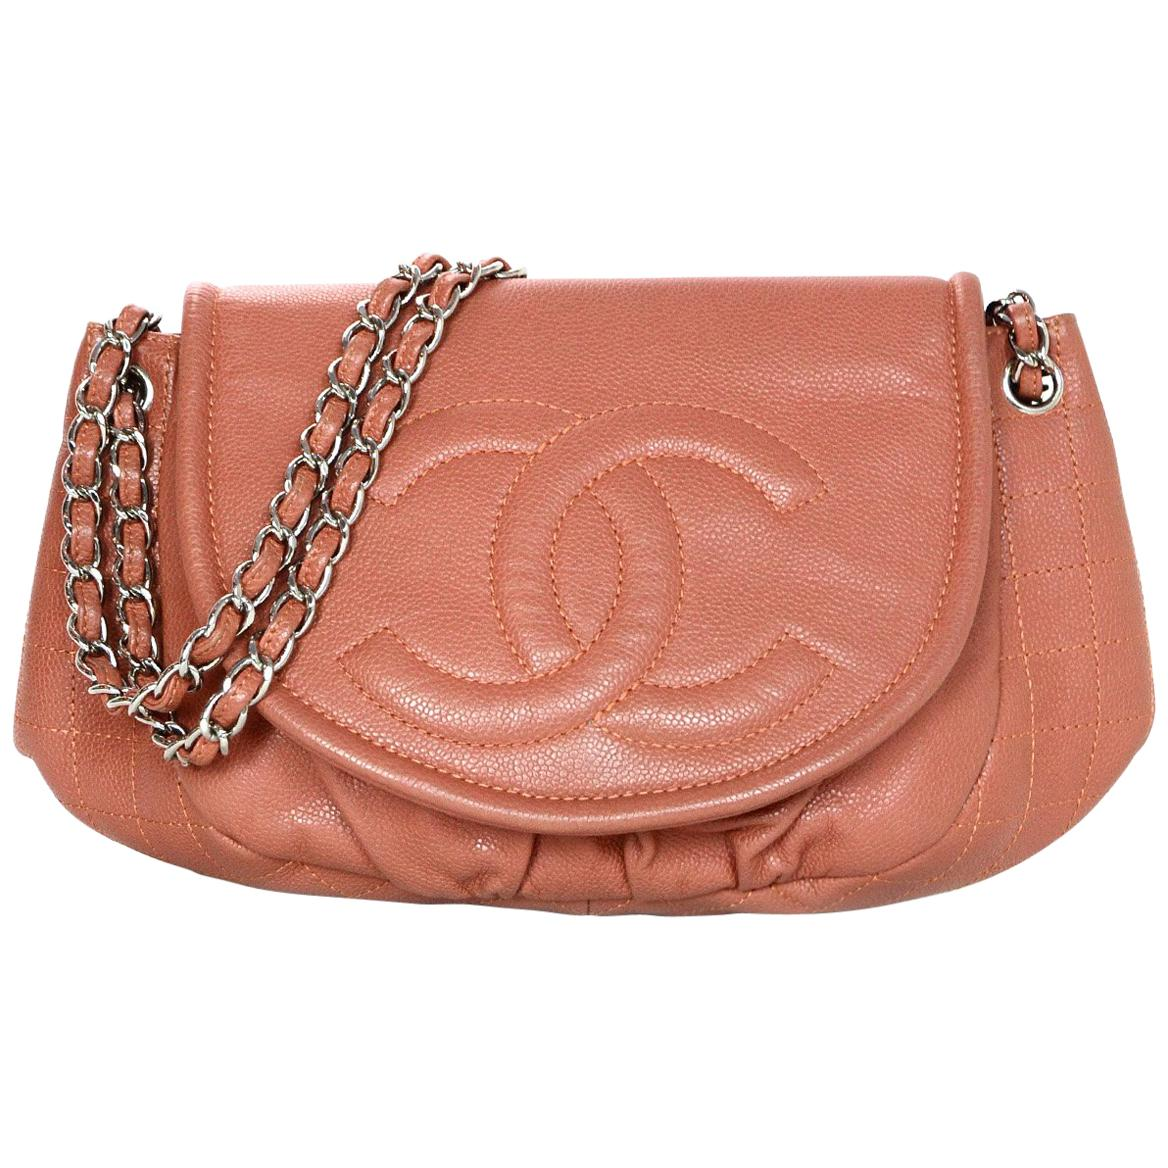 7d60be133de2 CHANEL Caramel Quilted Leather Camera Bag With Tassel at 1stdibs